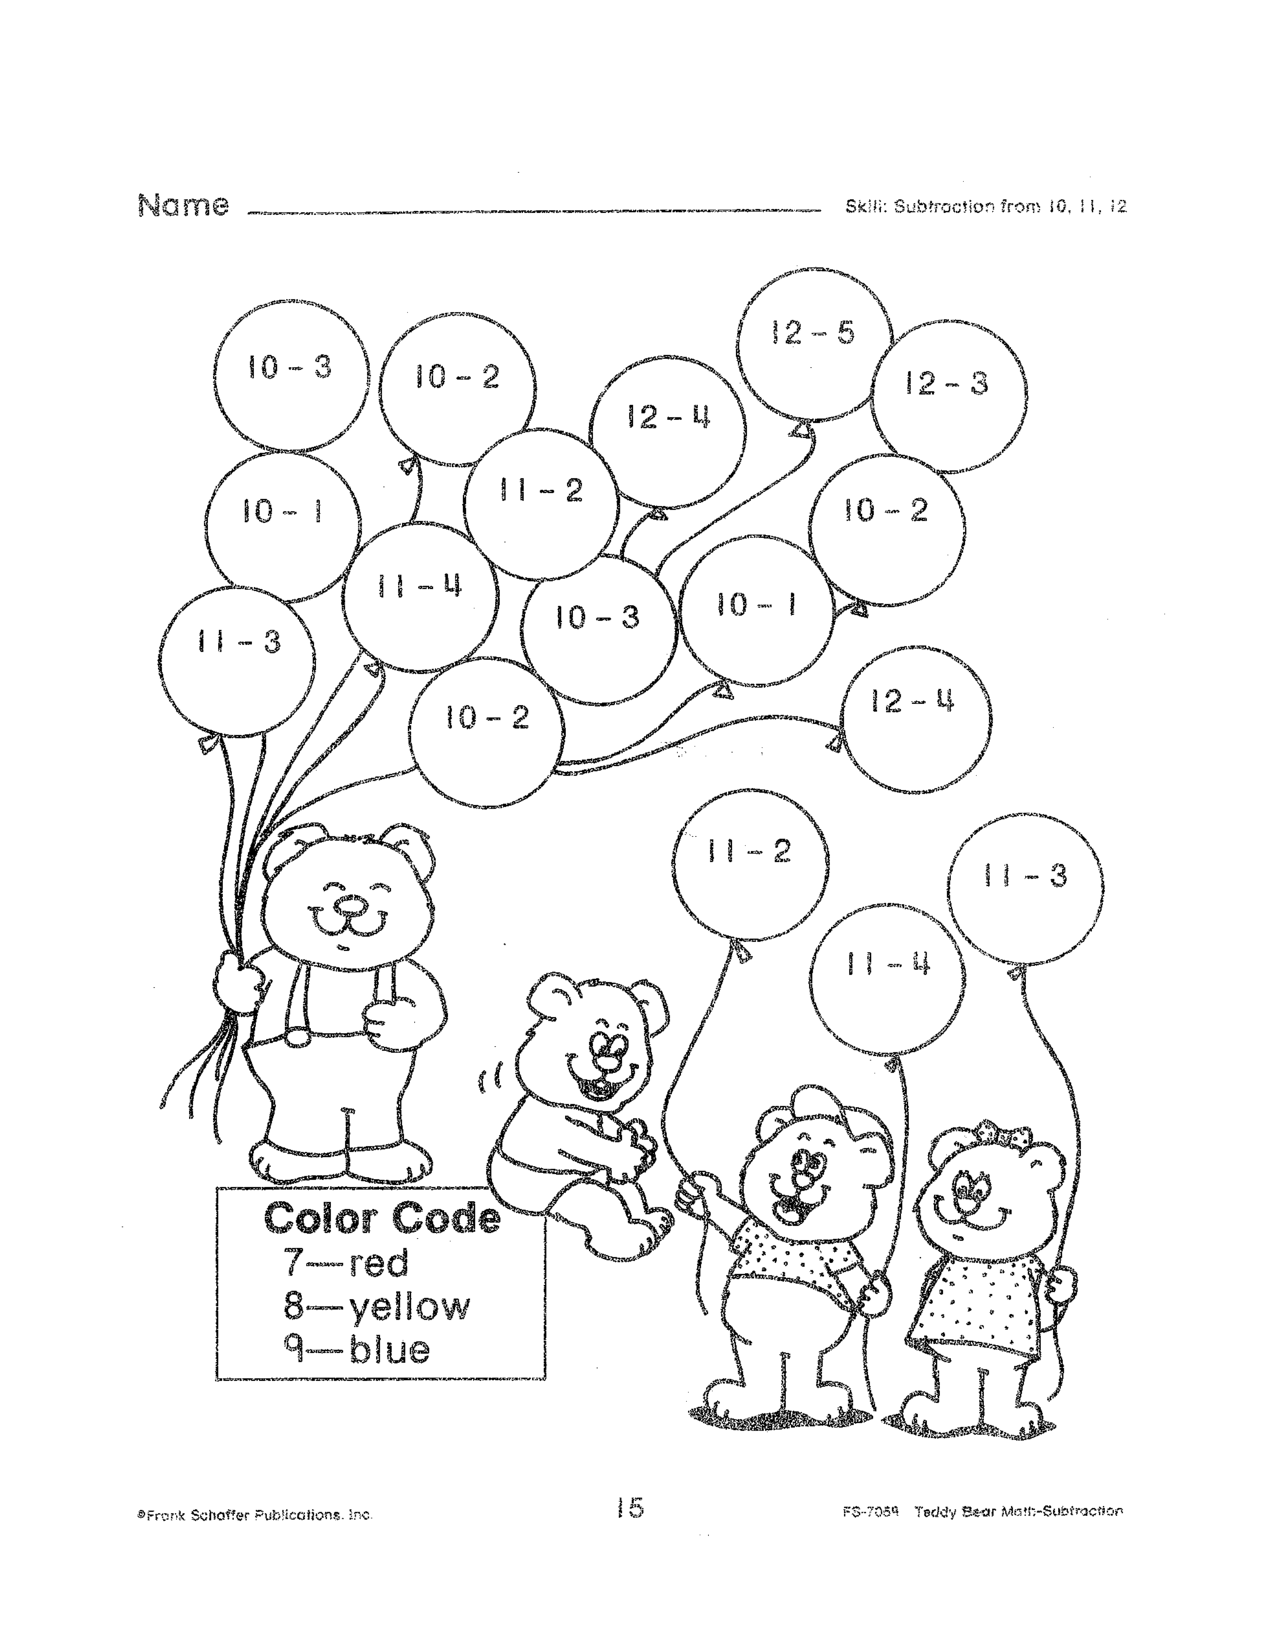 Worksheet Math For 2nd Graders Worksheets 1000 images about 2nd grade learning on pinterest dolch sight words word worksheets and place value worksheets